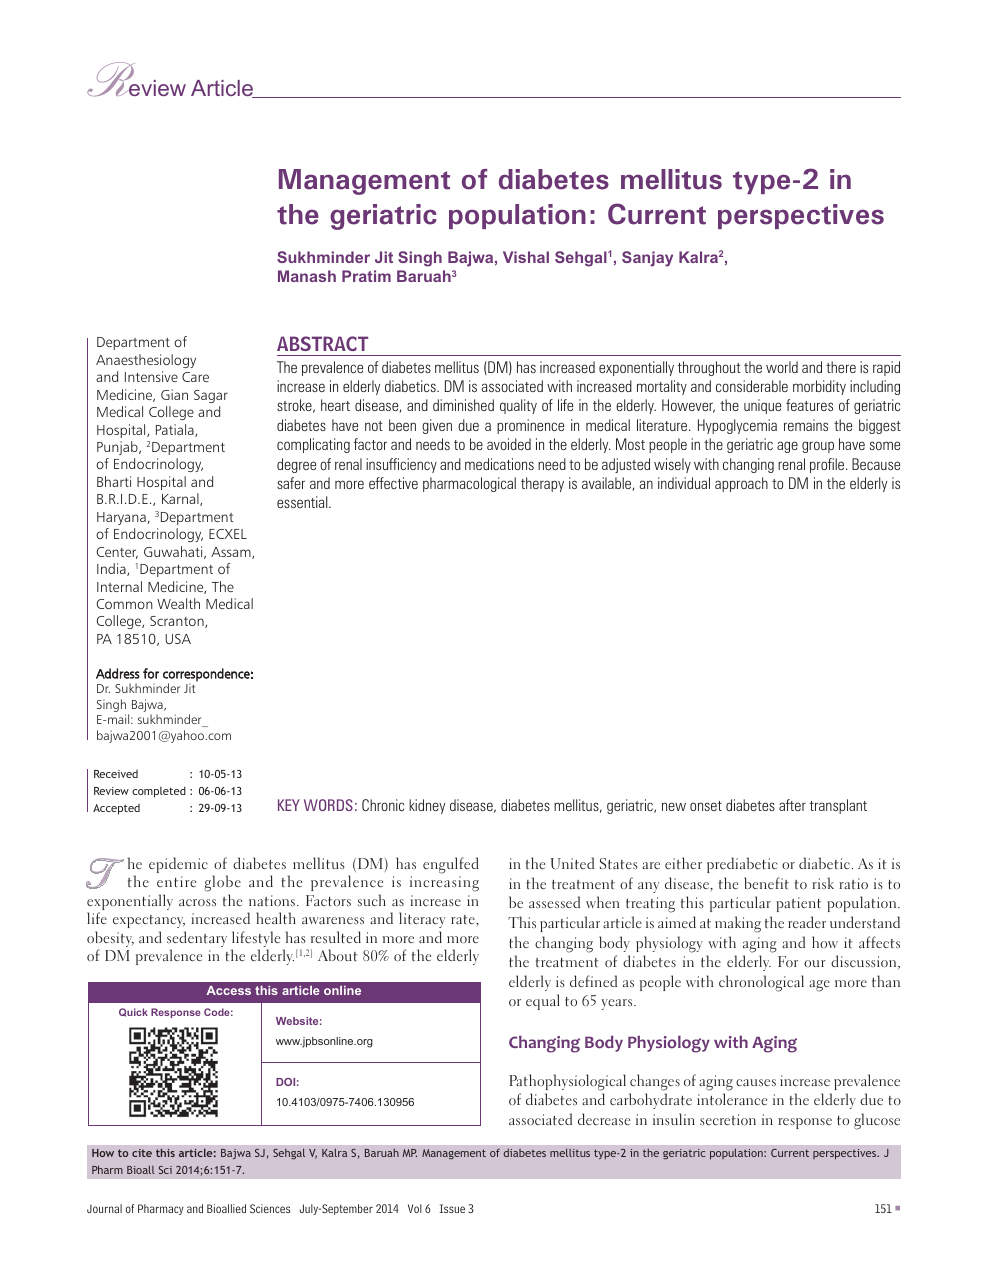 Management of diabetes mellitus type-2 in the geriatric population